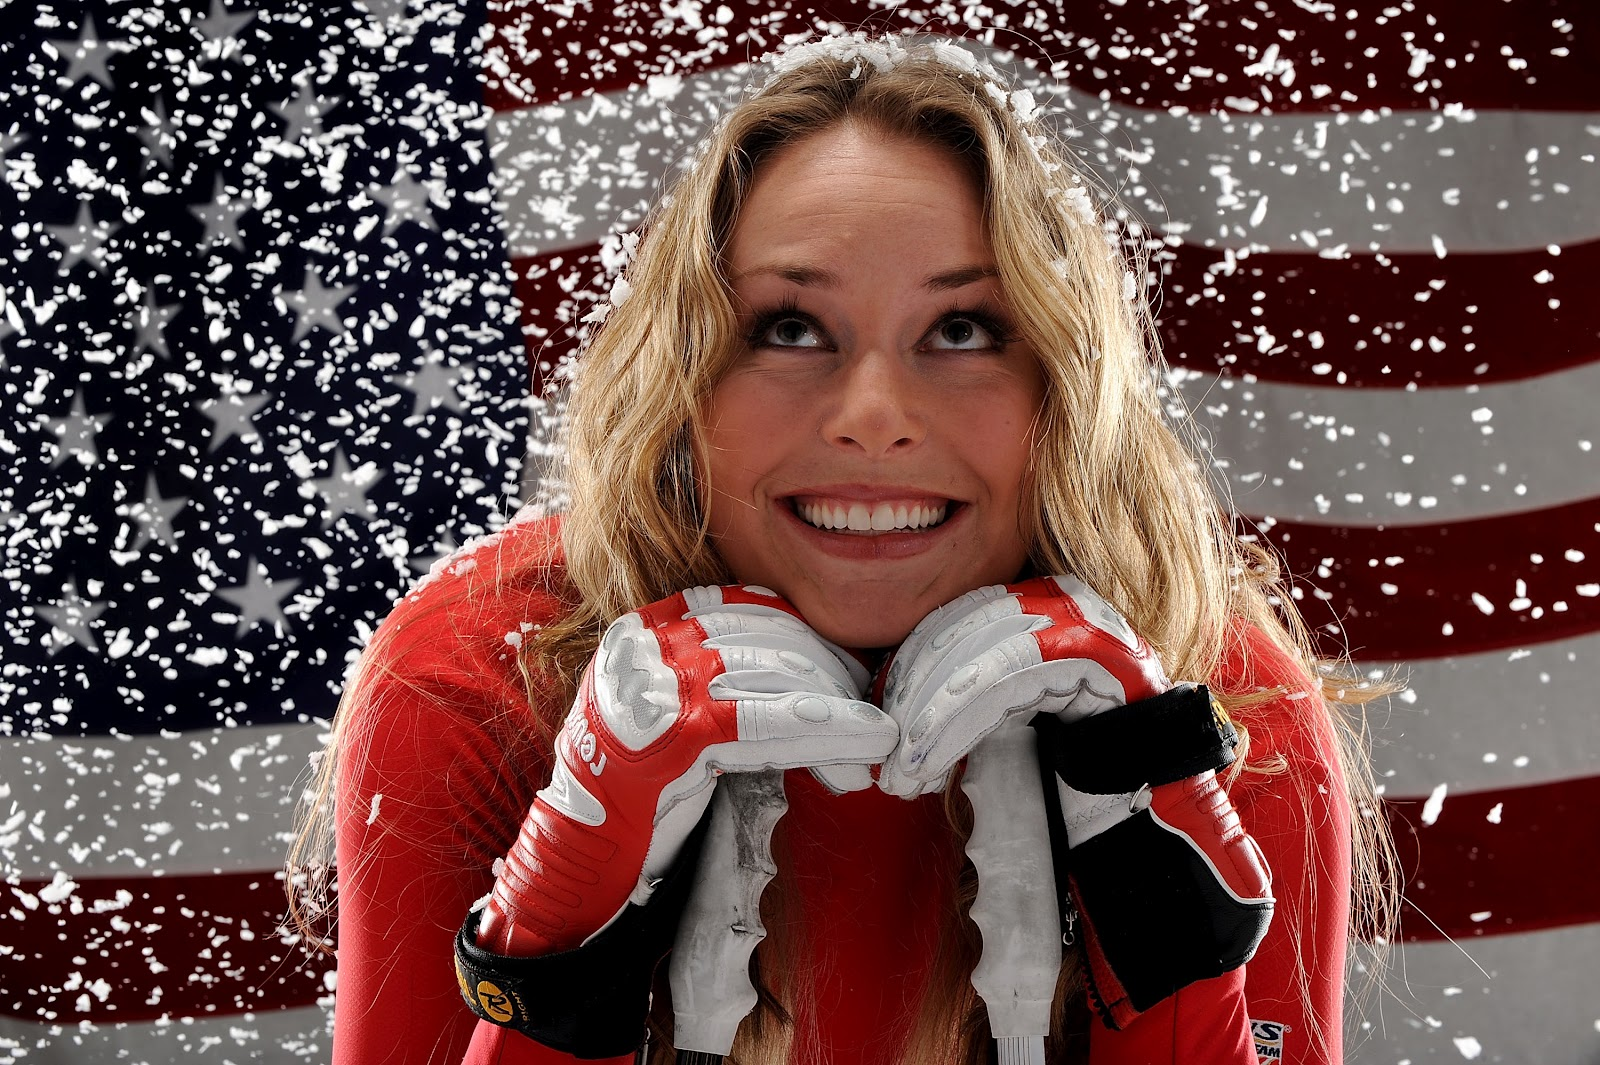 All sports players lindsey vonn hot hd wallpapers 2012